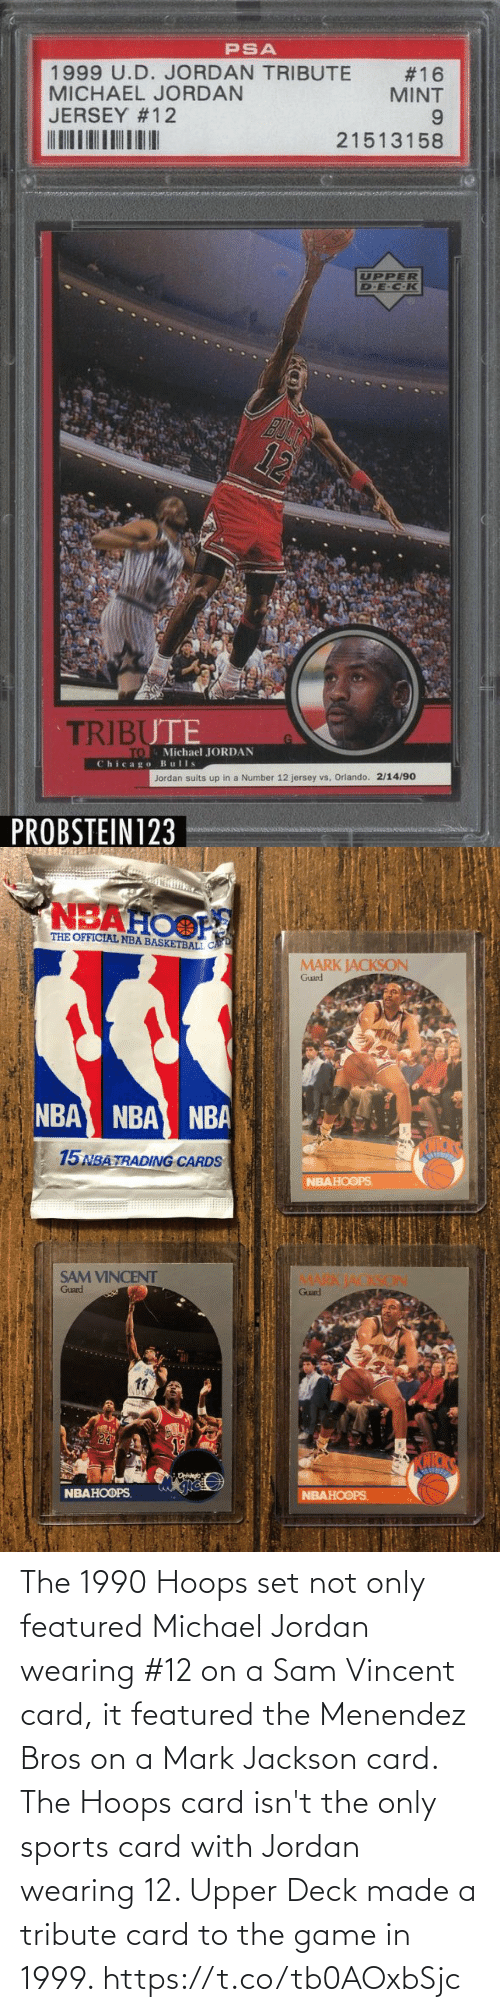 Menendez: The 1990 Hoops set not only featured Michael Jordan wearing #12 on a Sam Vincent card, it featured the Menendez Bros on a Mark Jackson card.   The Hoops card isn't the only sports card with Jordan wearing 12. Upper Deck made a tribute card to the game in 1999. https://t.co/tb0AOxbSjc